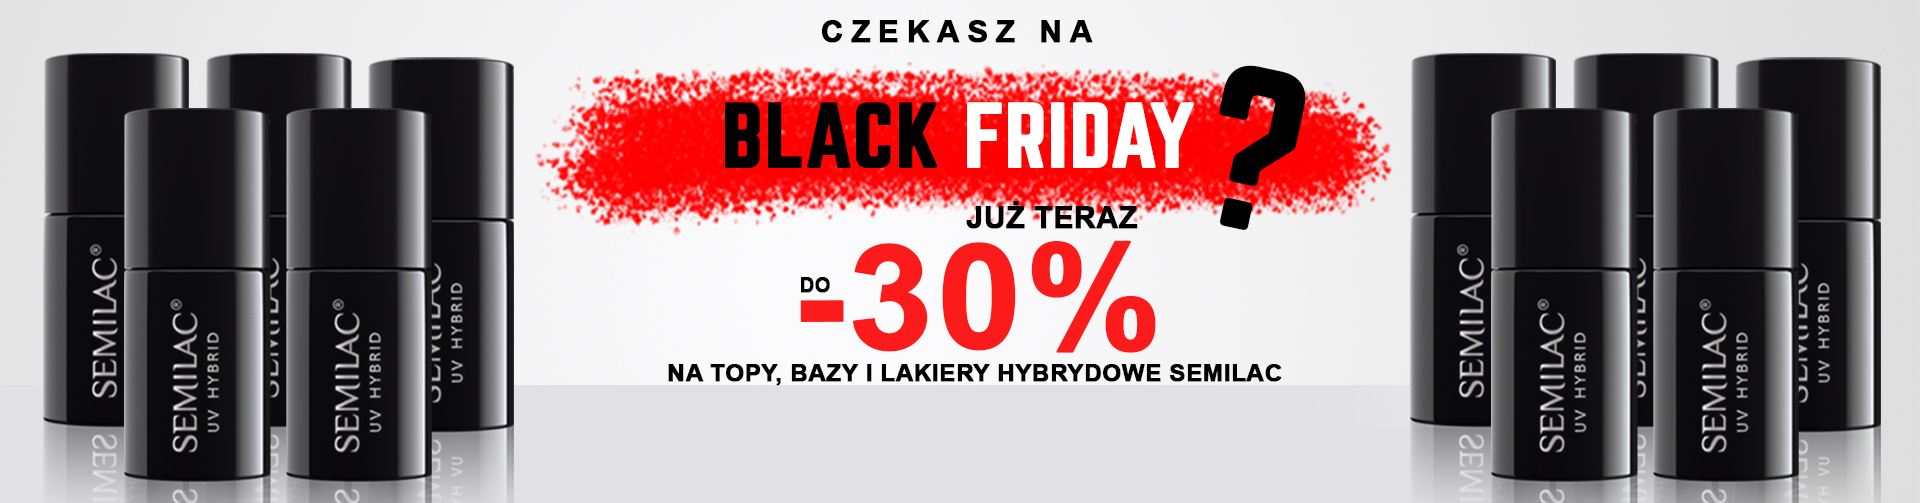 Semilac BLACK FRIDAY -30%